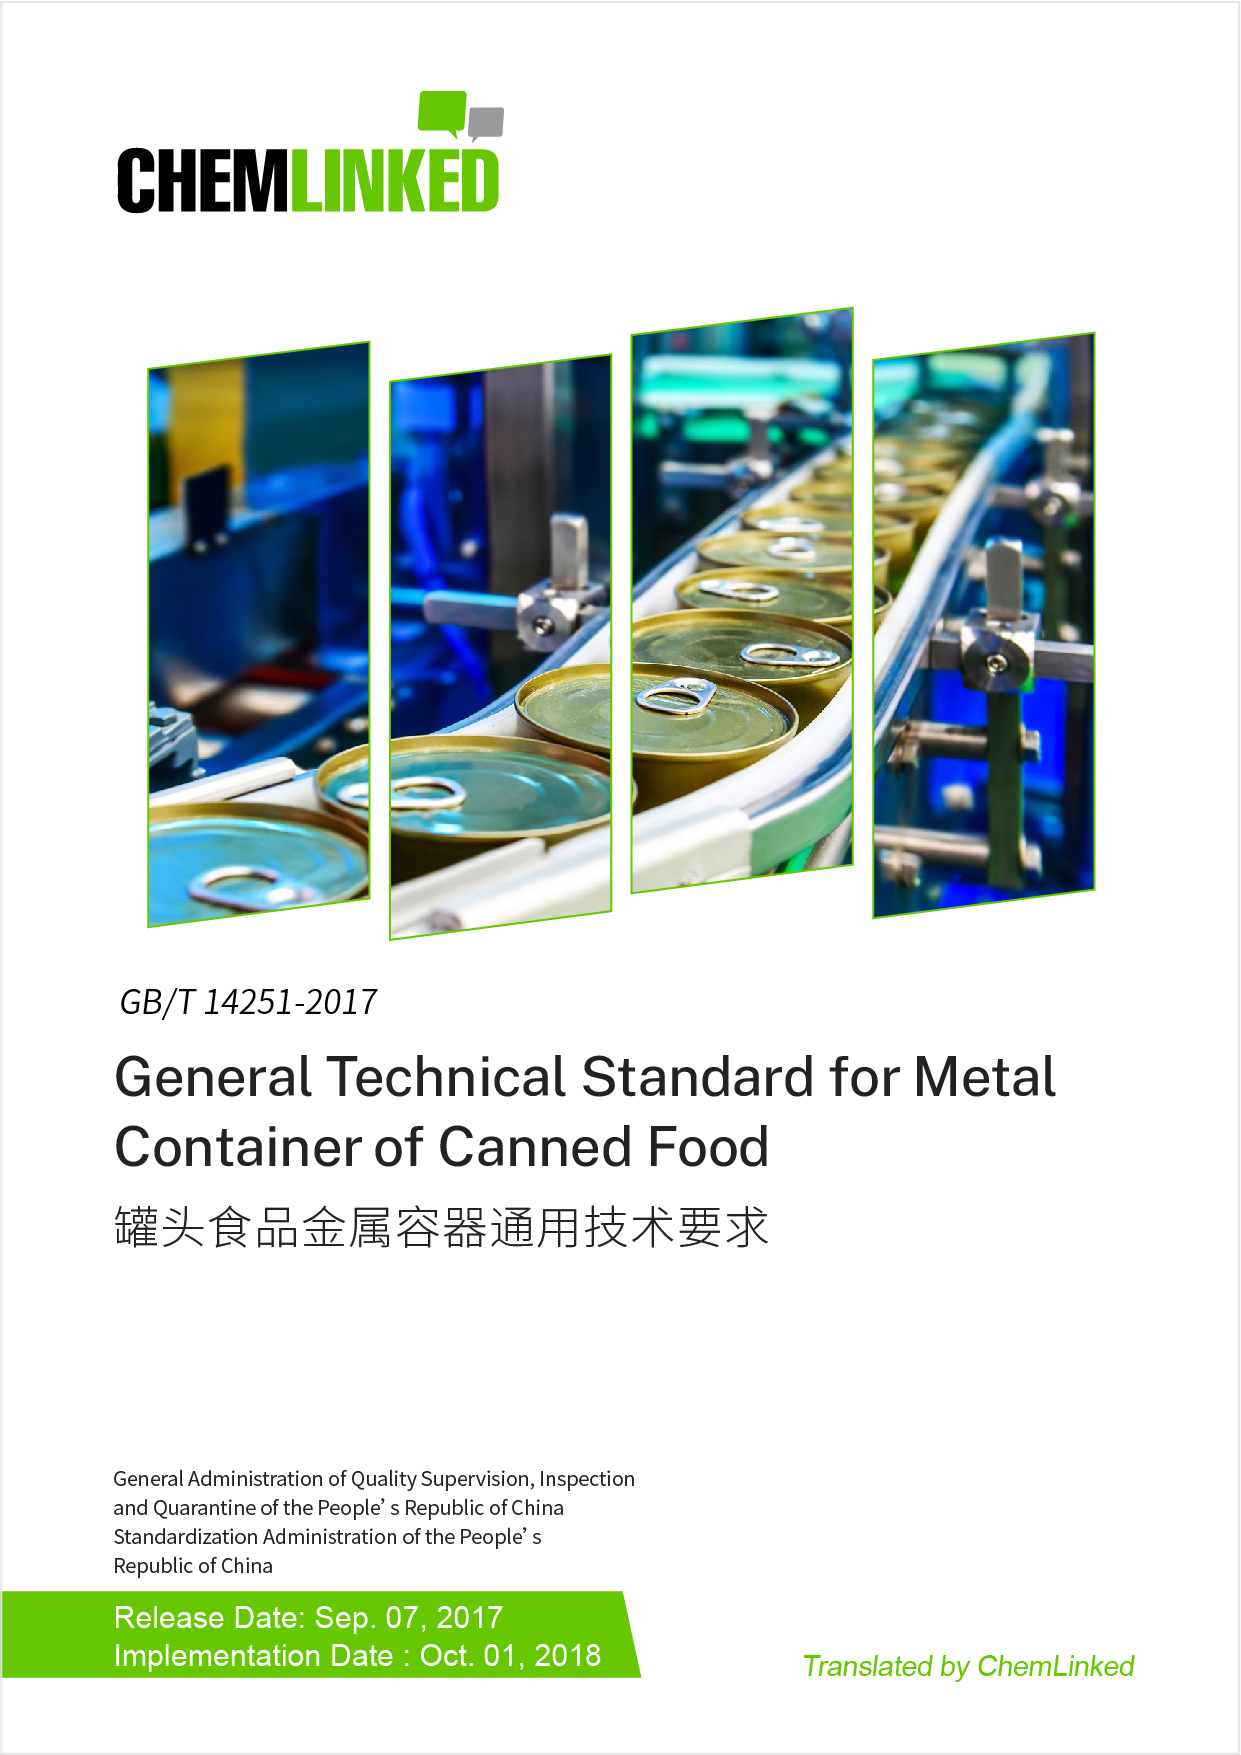 GB/T 14251-2017 General Technical Standard for Metal Container of Canned Food